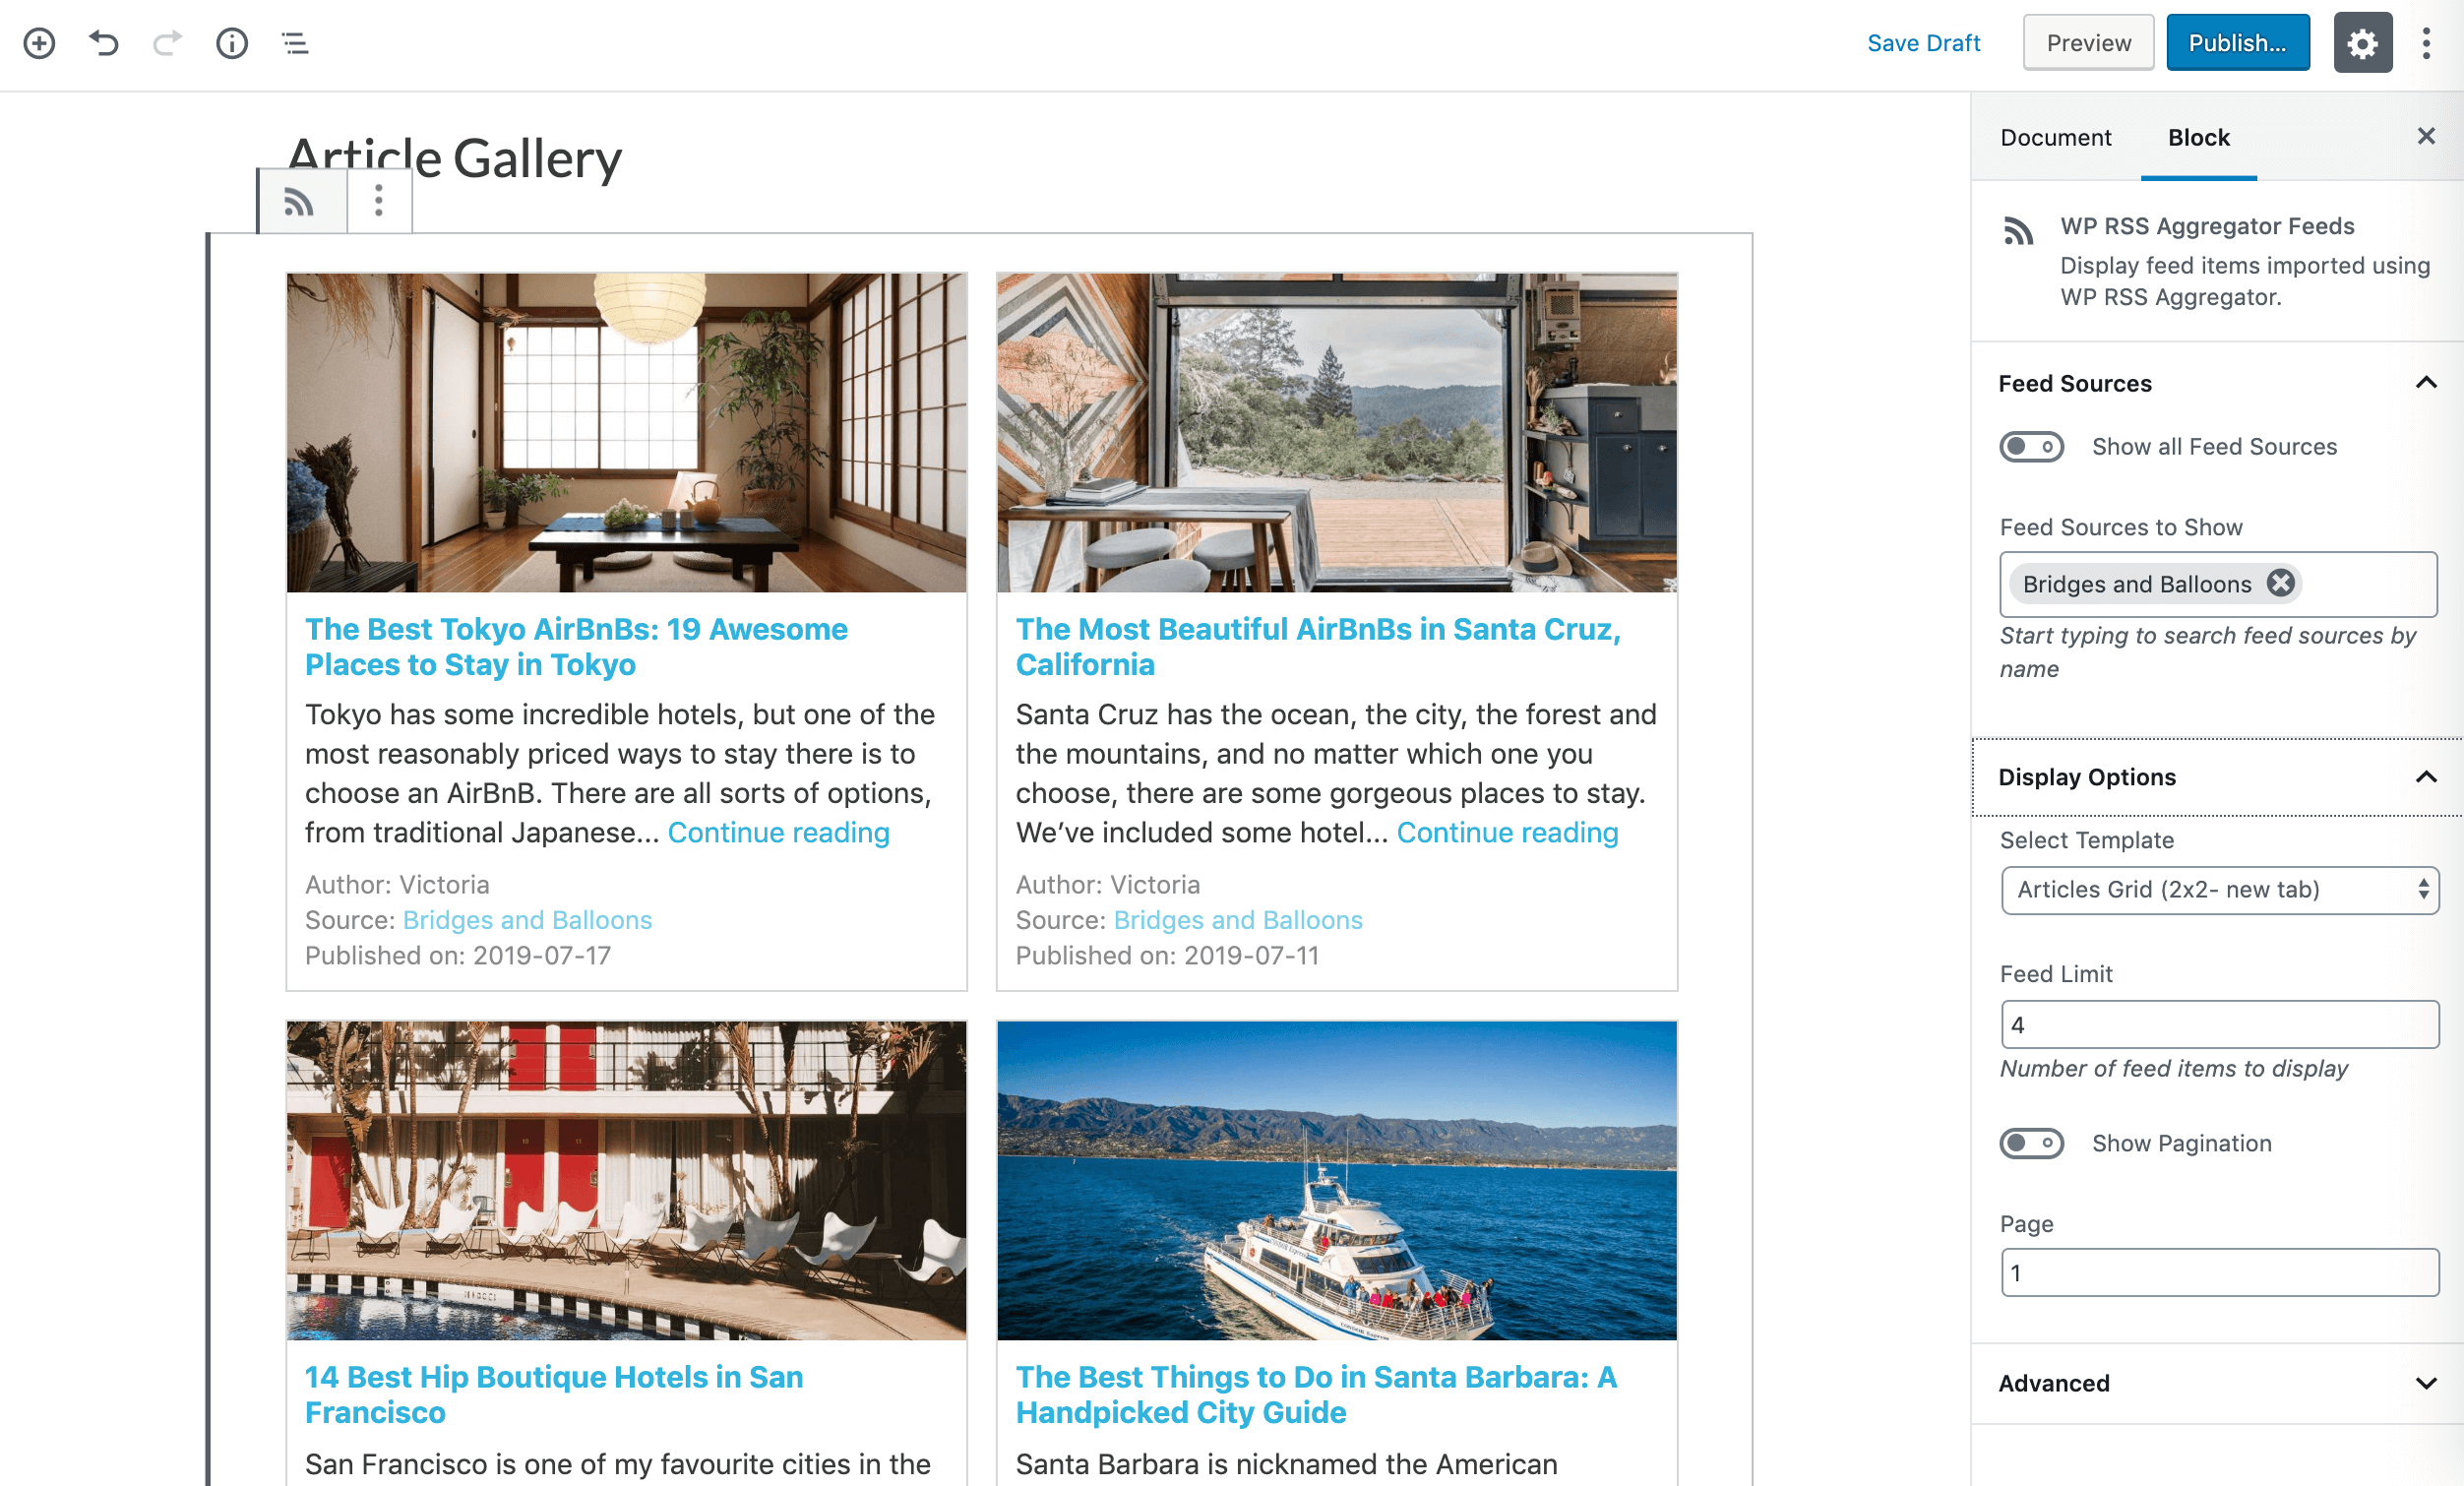 Choosing the grid template for a new article gallery.